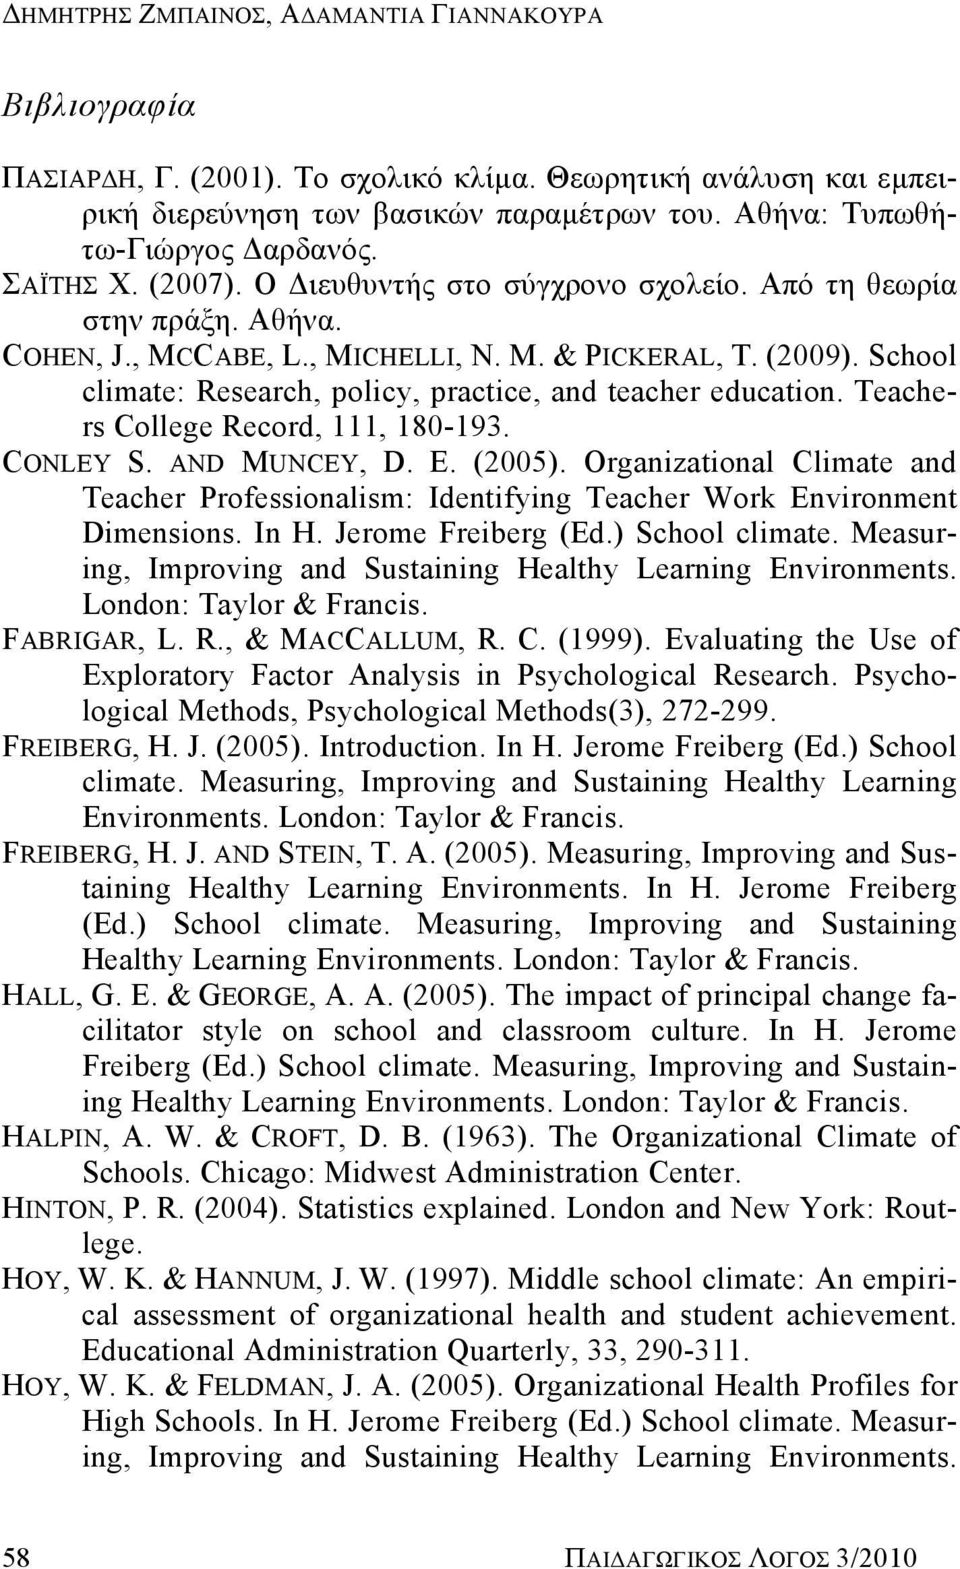 School climate: Research, policy, practice, and teacher education. Teachers College Record, 111, 180-193. CONLEY S. AND MUNCEY, D. E. (2005).